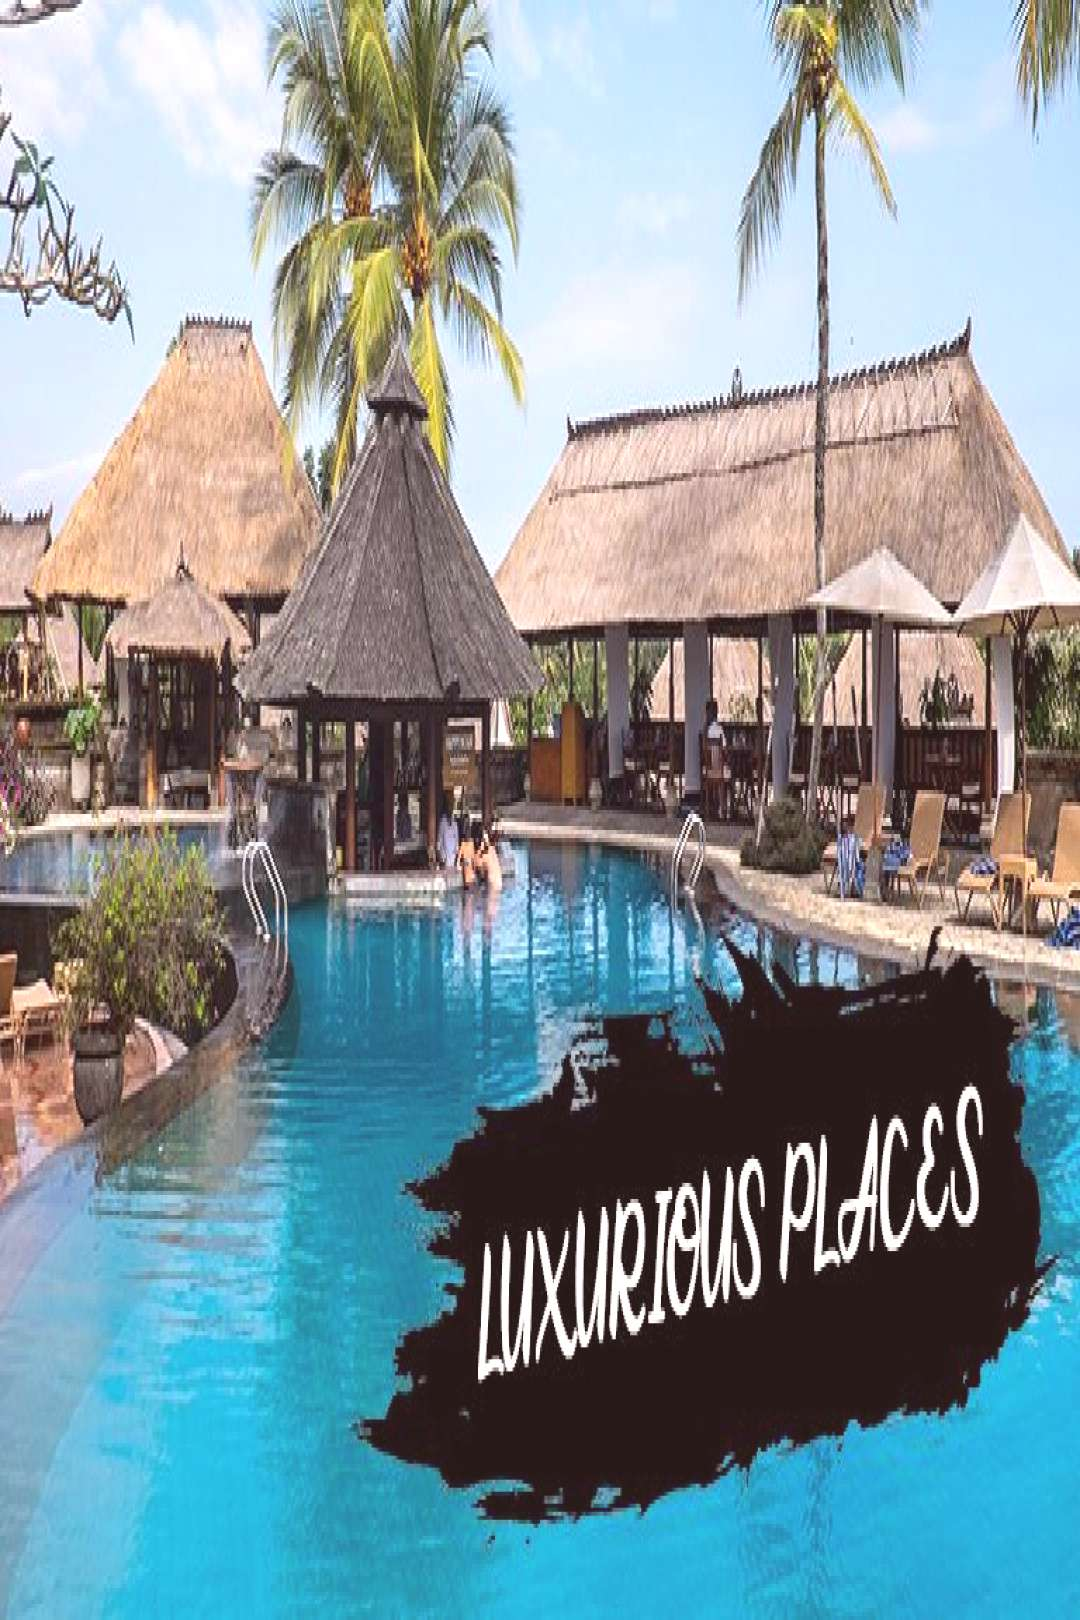 Top 14 Luxurious Places to Visit in the World